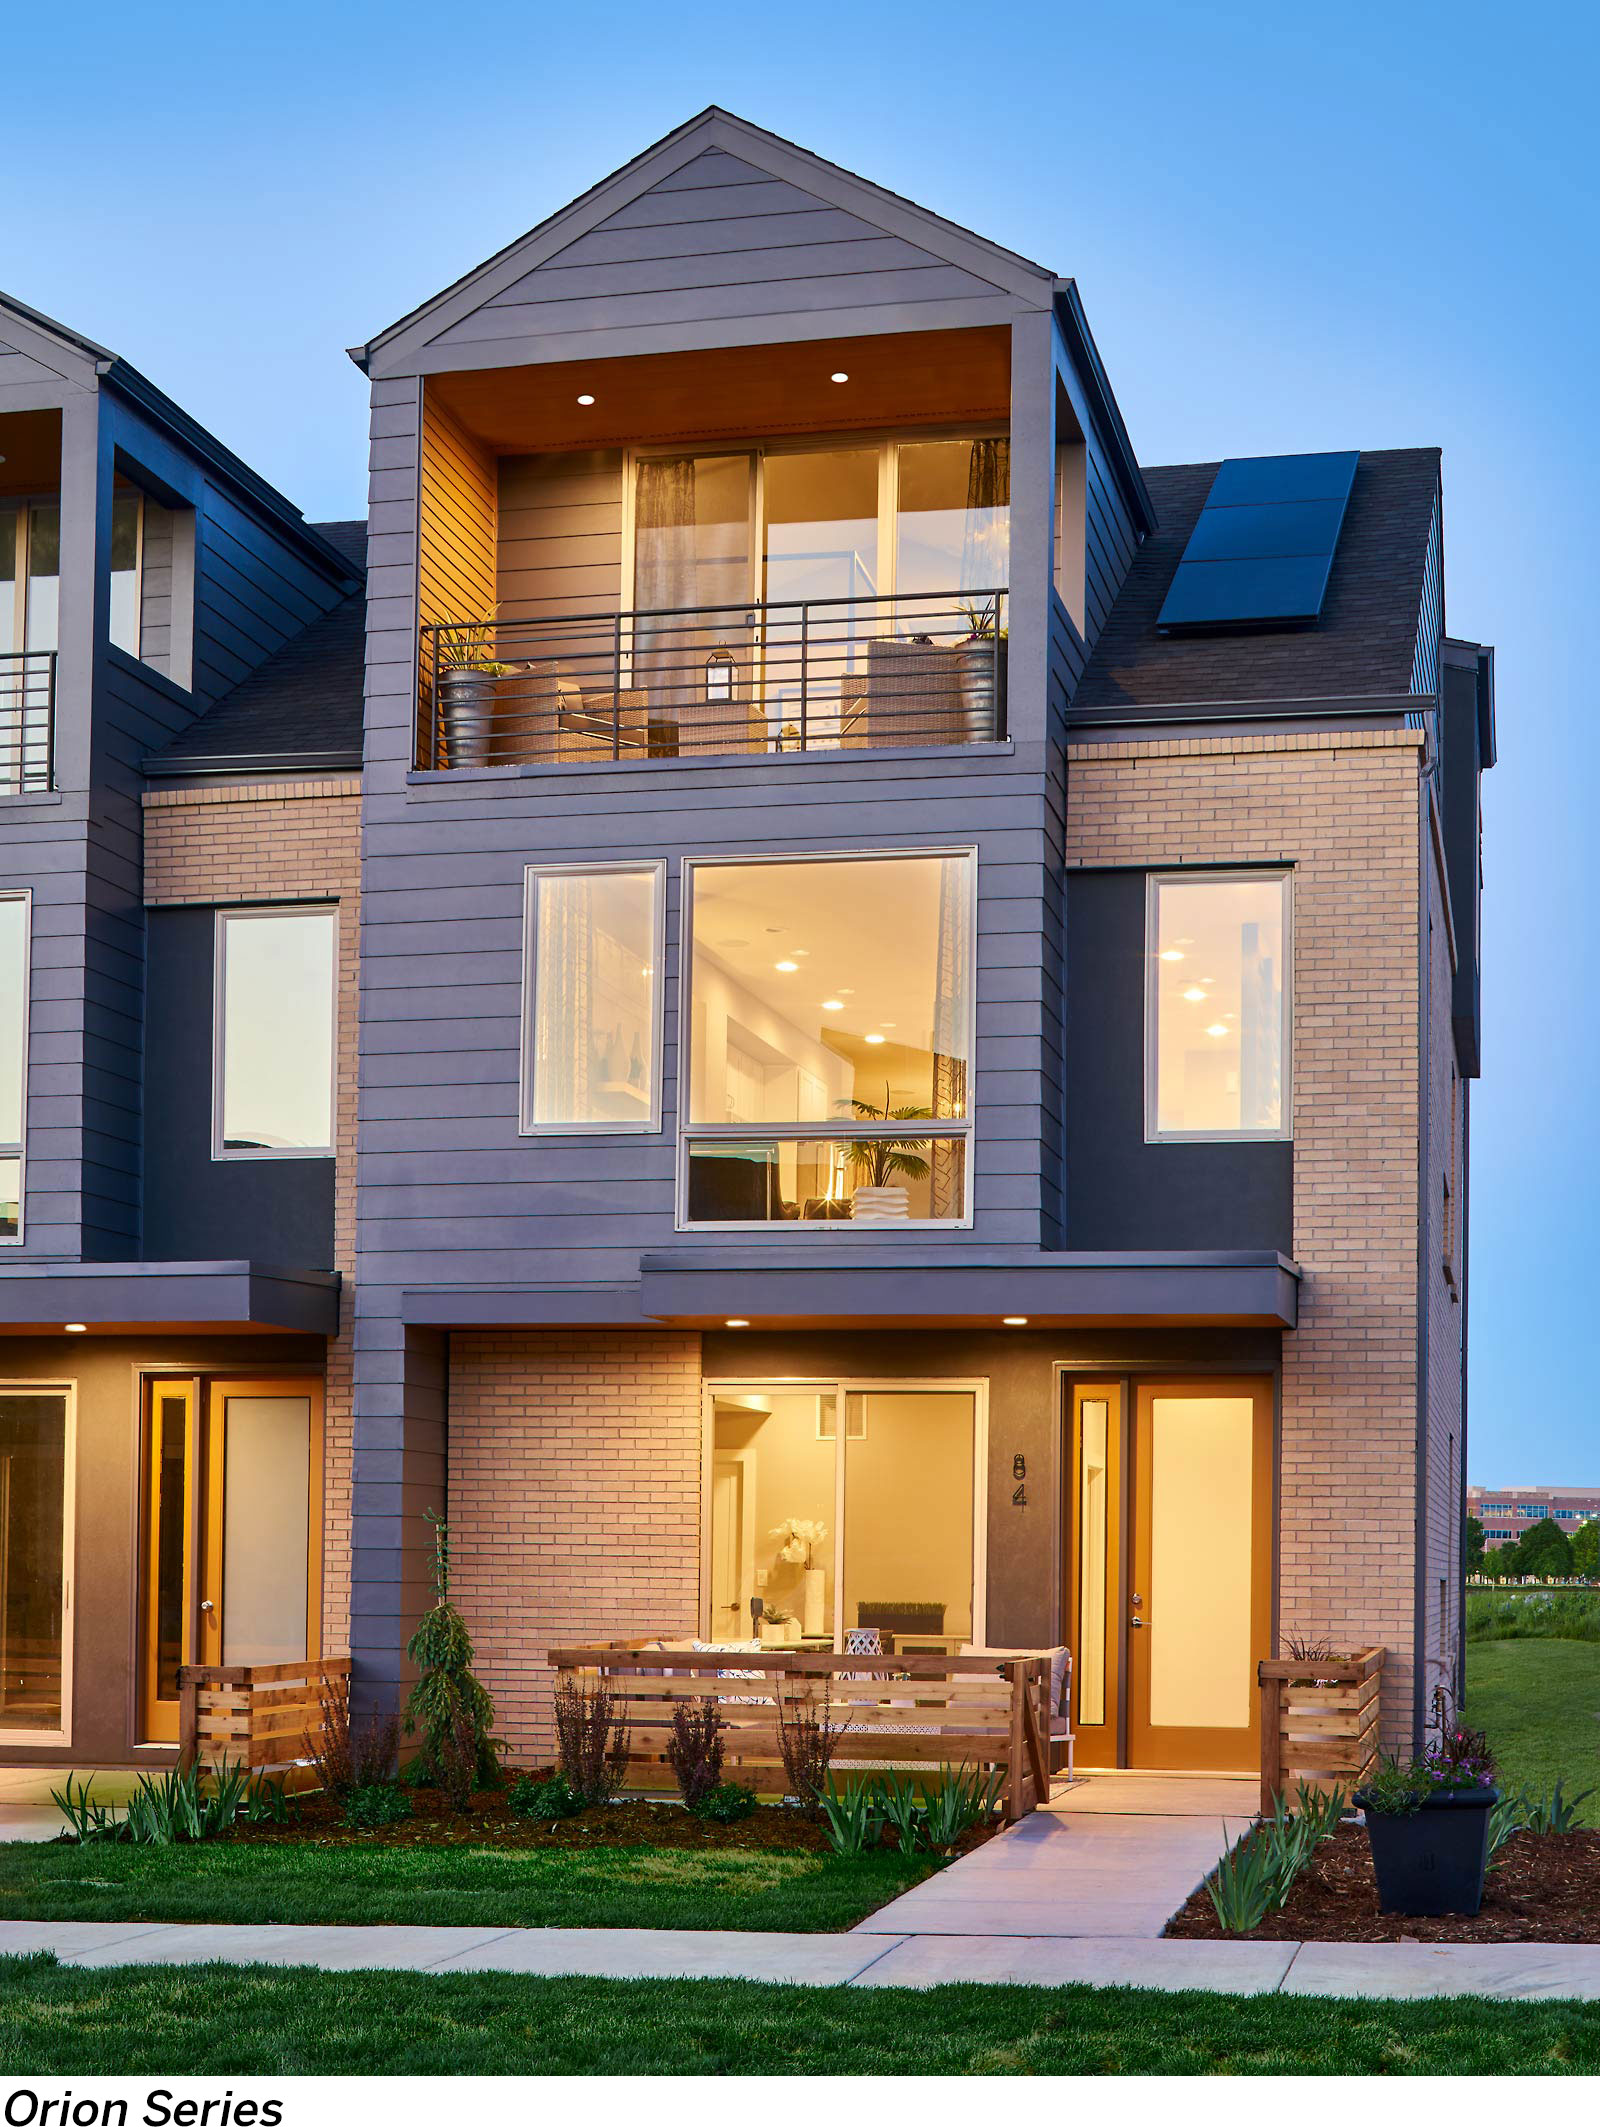 Orion Townhomes